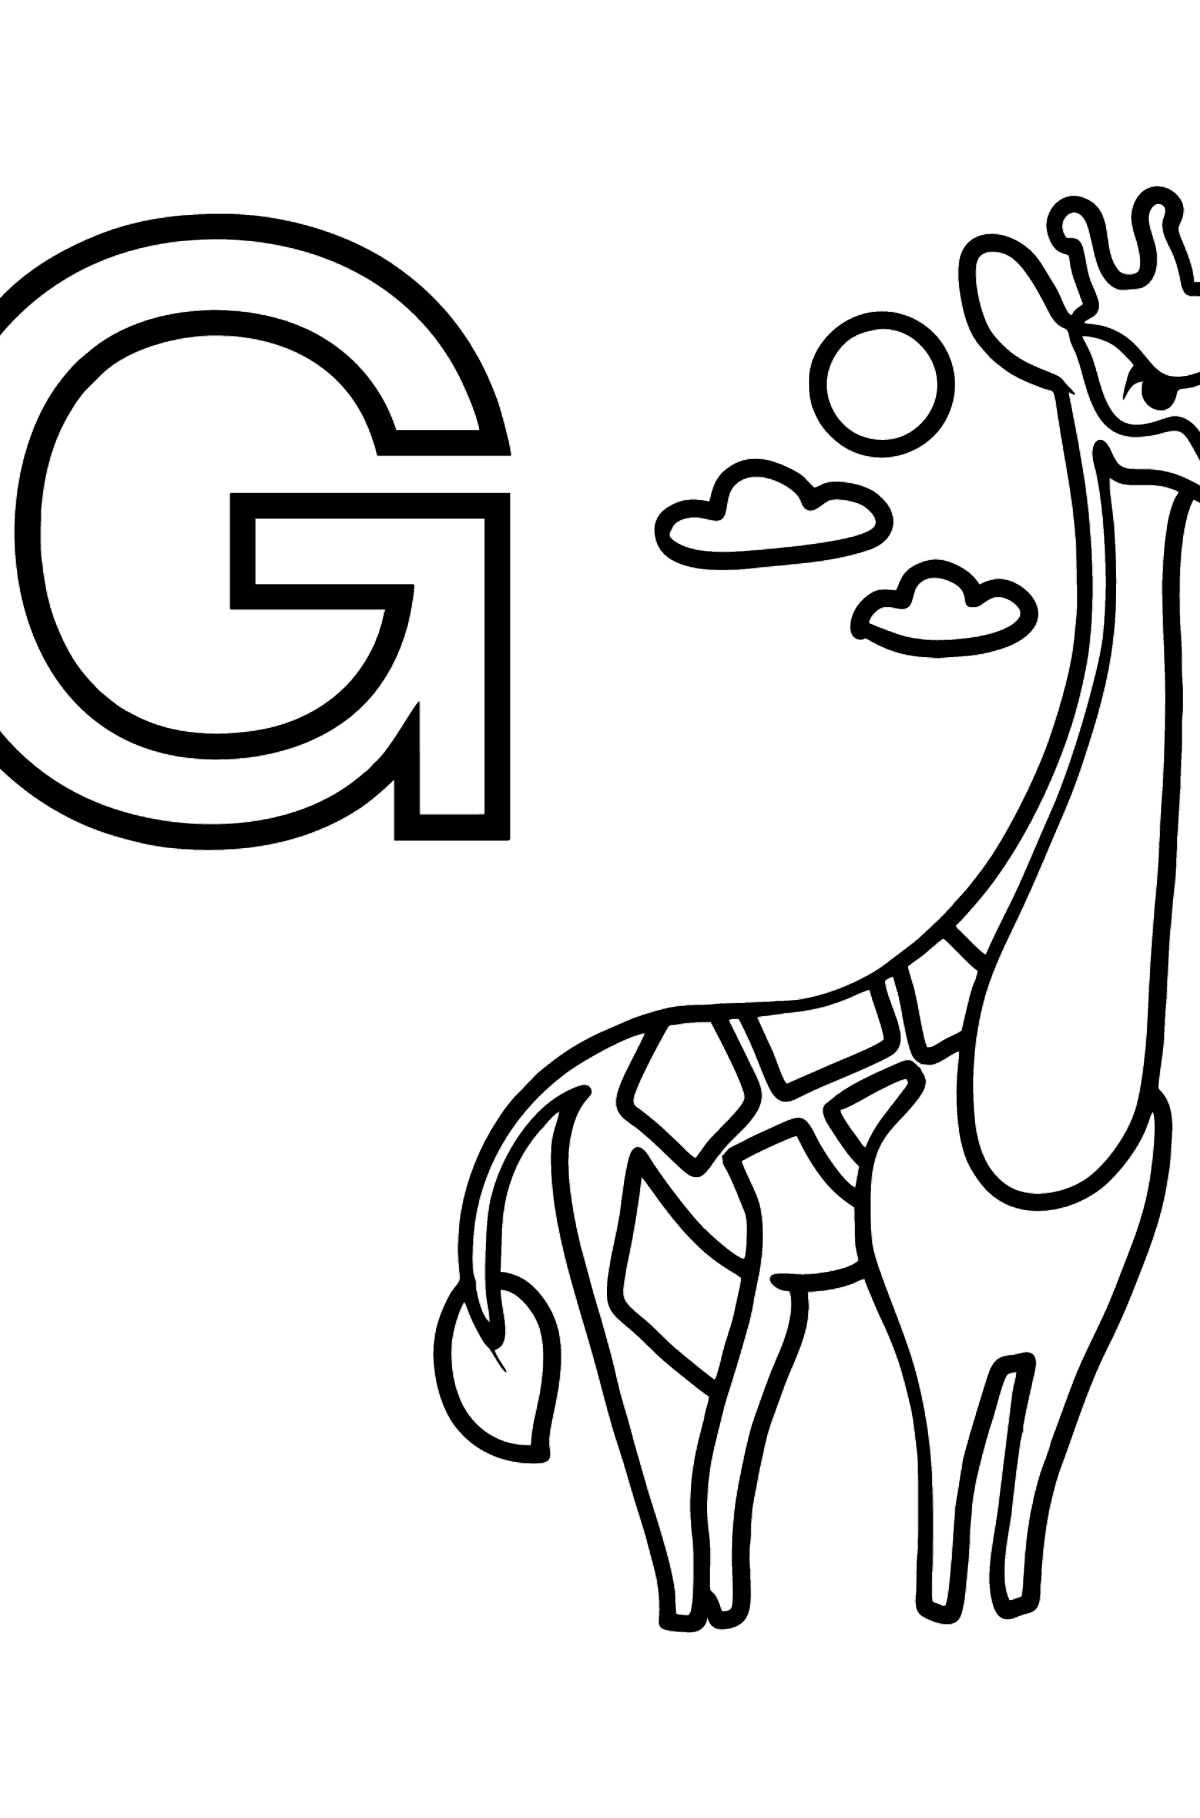 Portuguese Letter G coloring pages - GIRAFA - Coloring Pages for Kids